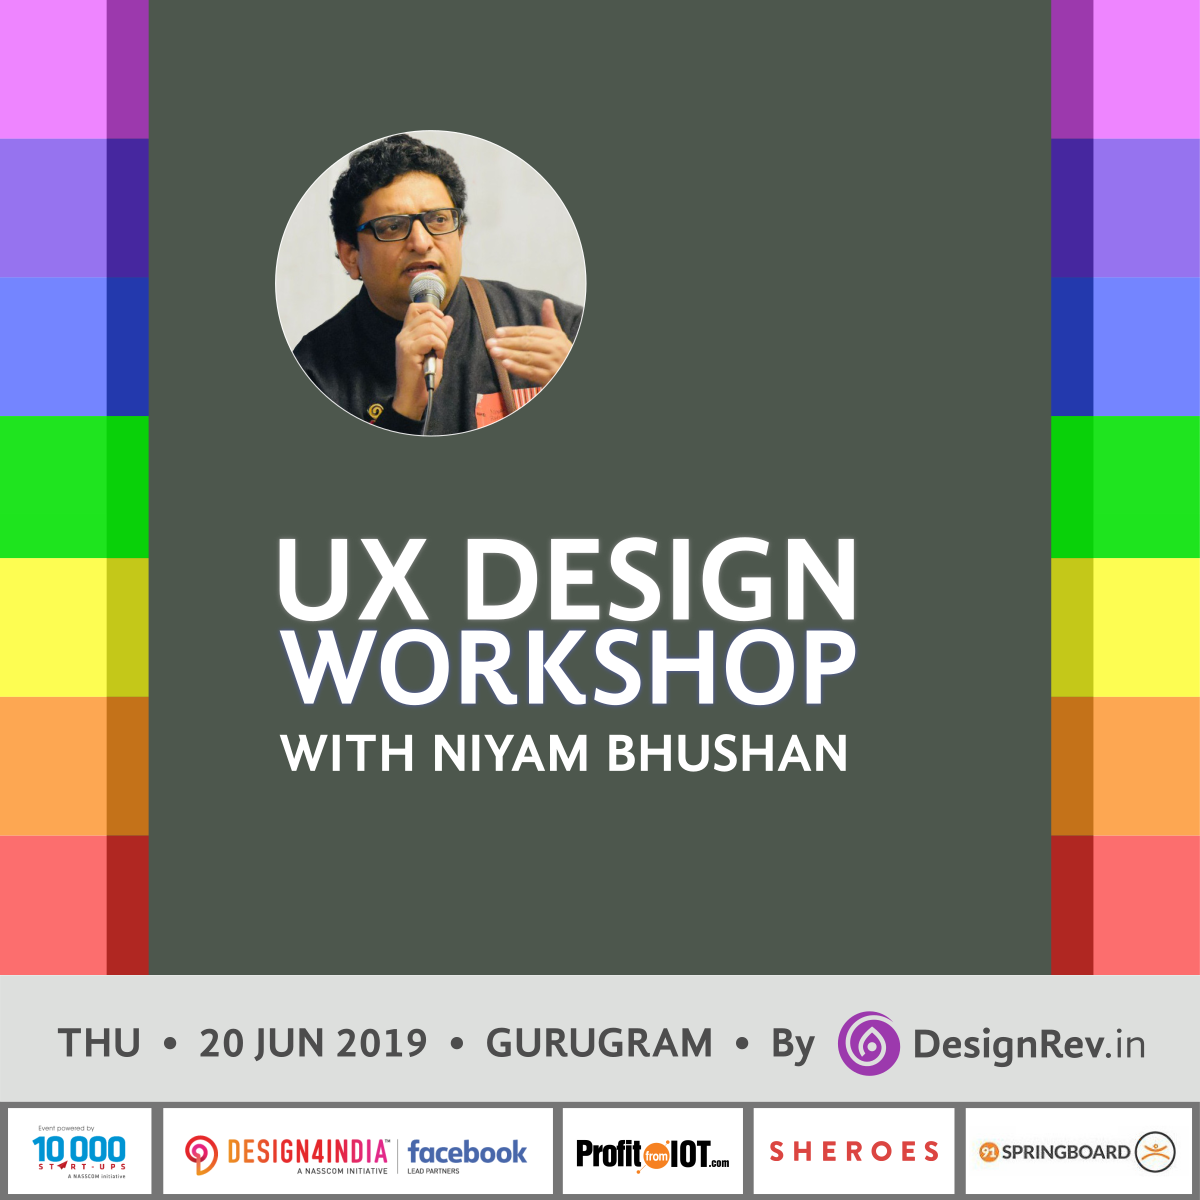 43rd UX Design Workshop with Niyam Bhushan on 20 Jun 2019 in Gurugram